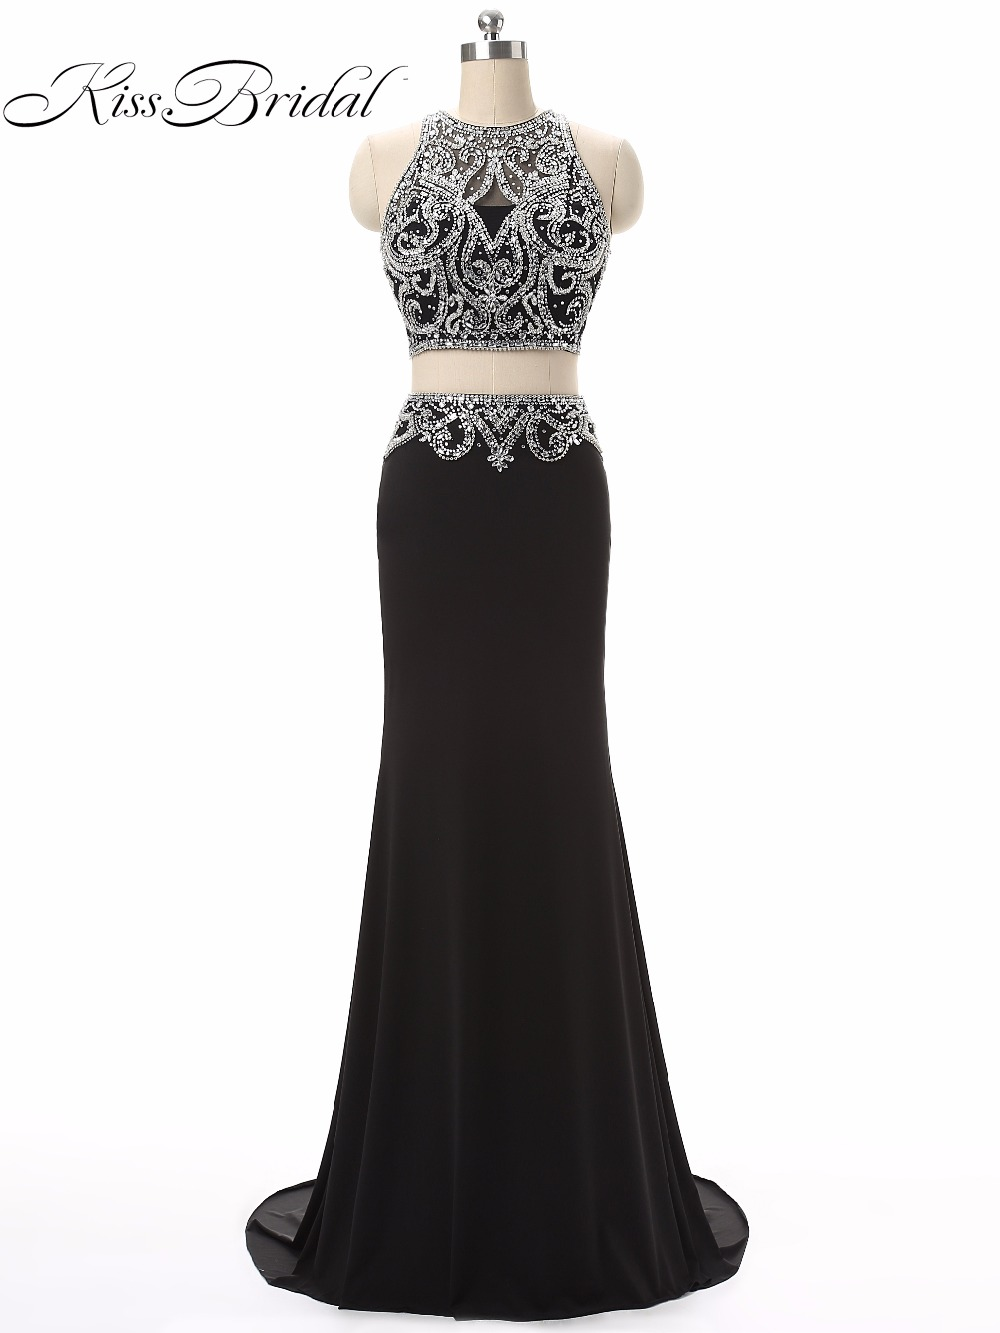 Sexy Two Pieces Party Prom Dresses Vestido de Festa O-Neck Sleeveless Beaded Illusion Formal Evening Gowns With Zipper Back